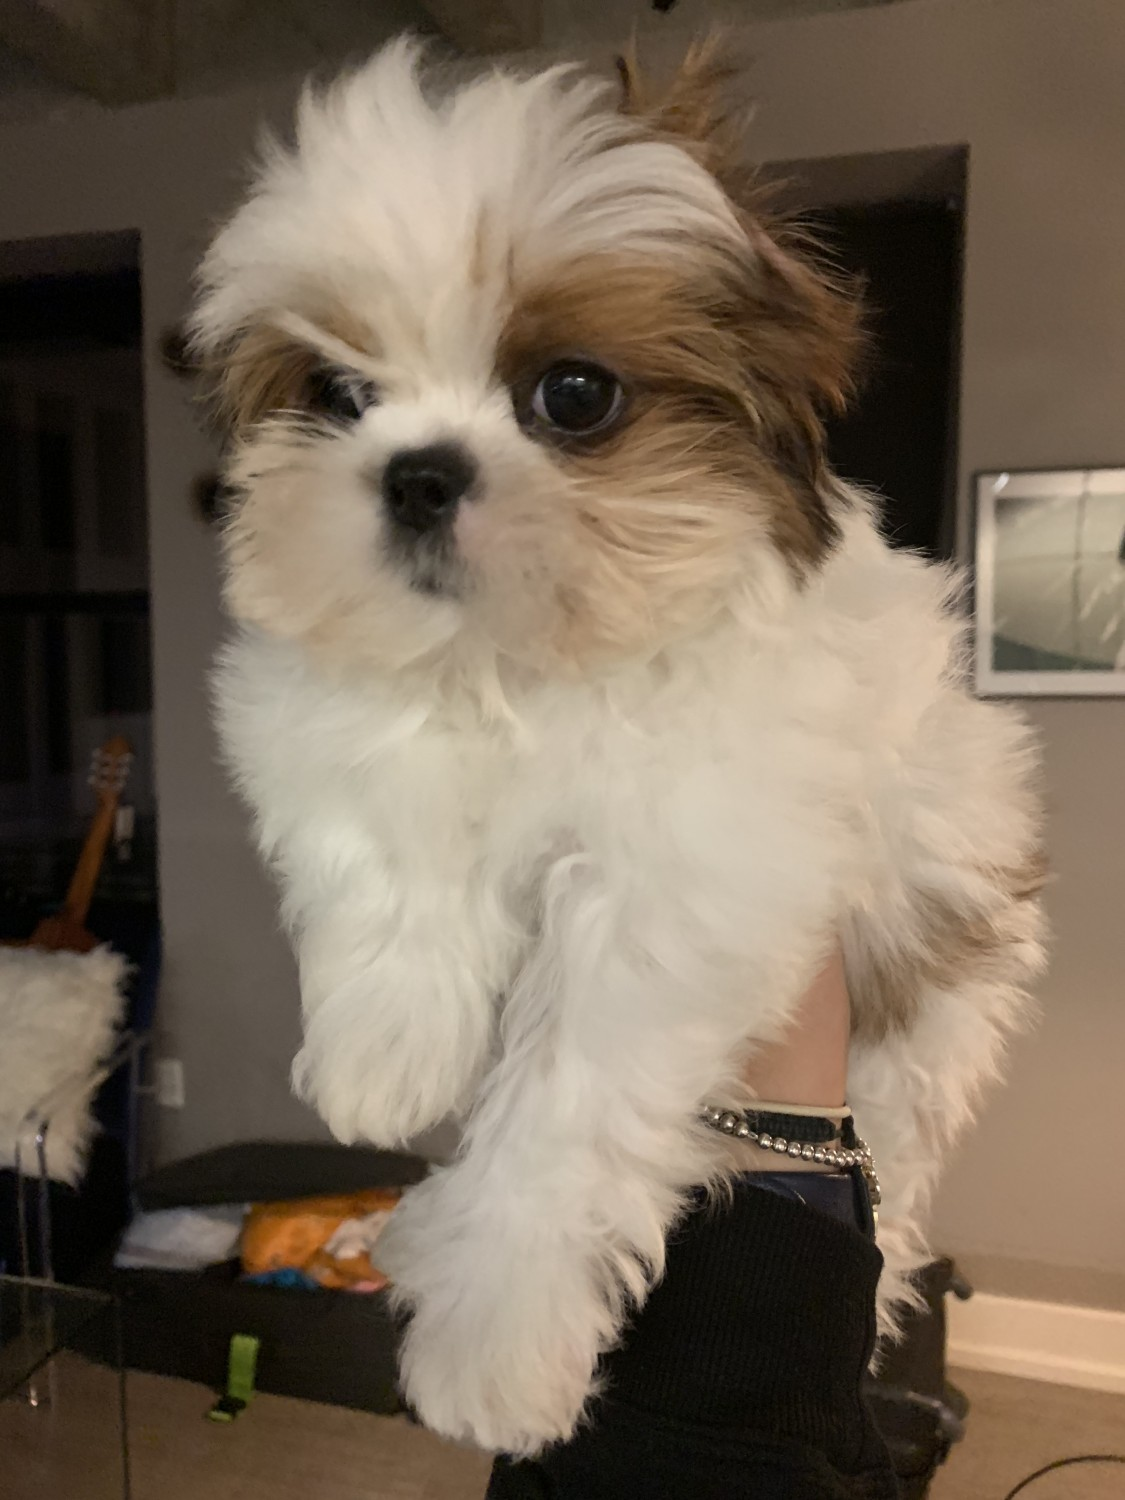 Shih Tzu Puppies For Sale West 7th Street Los Angeles Ca 286059